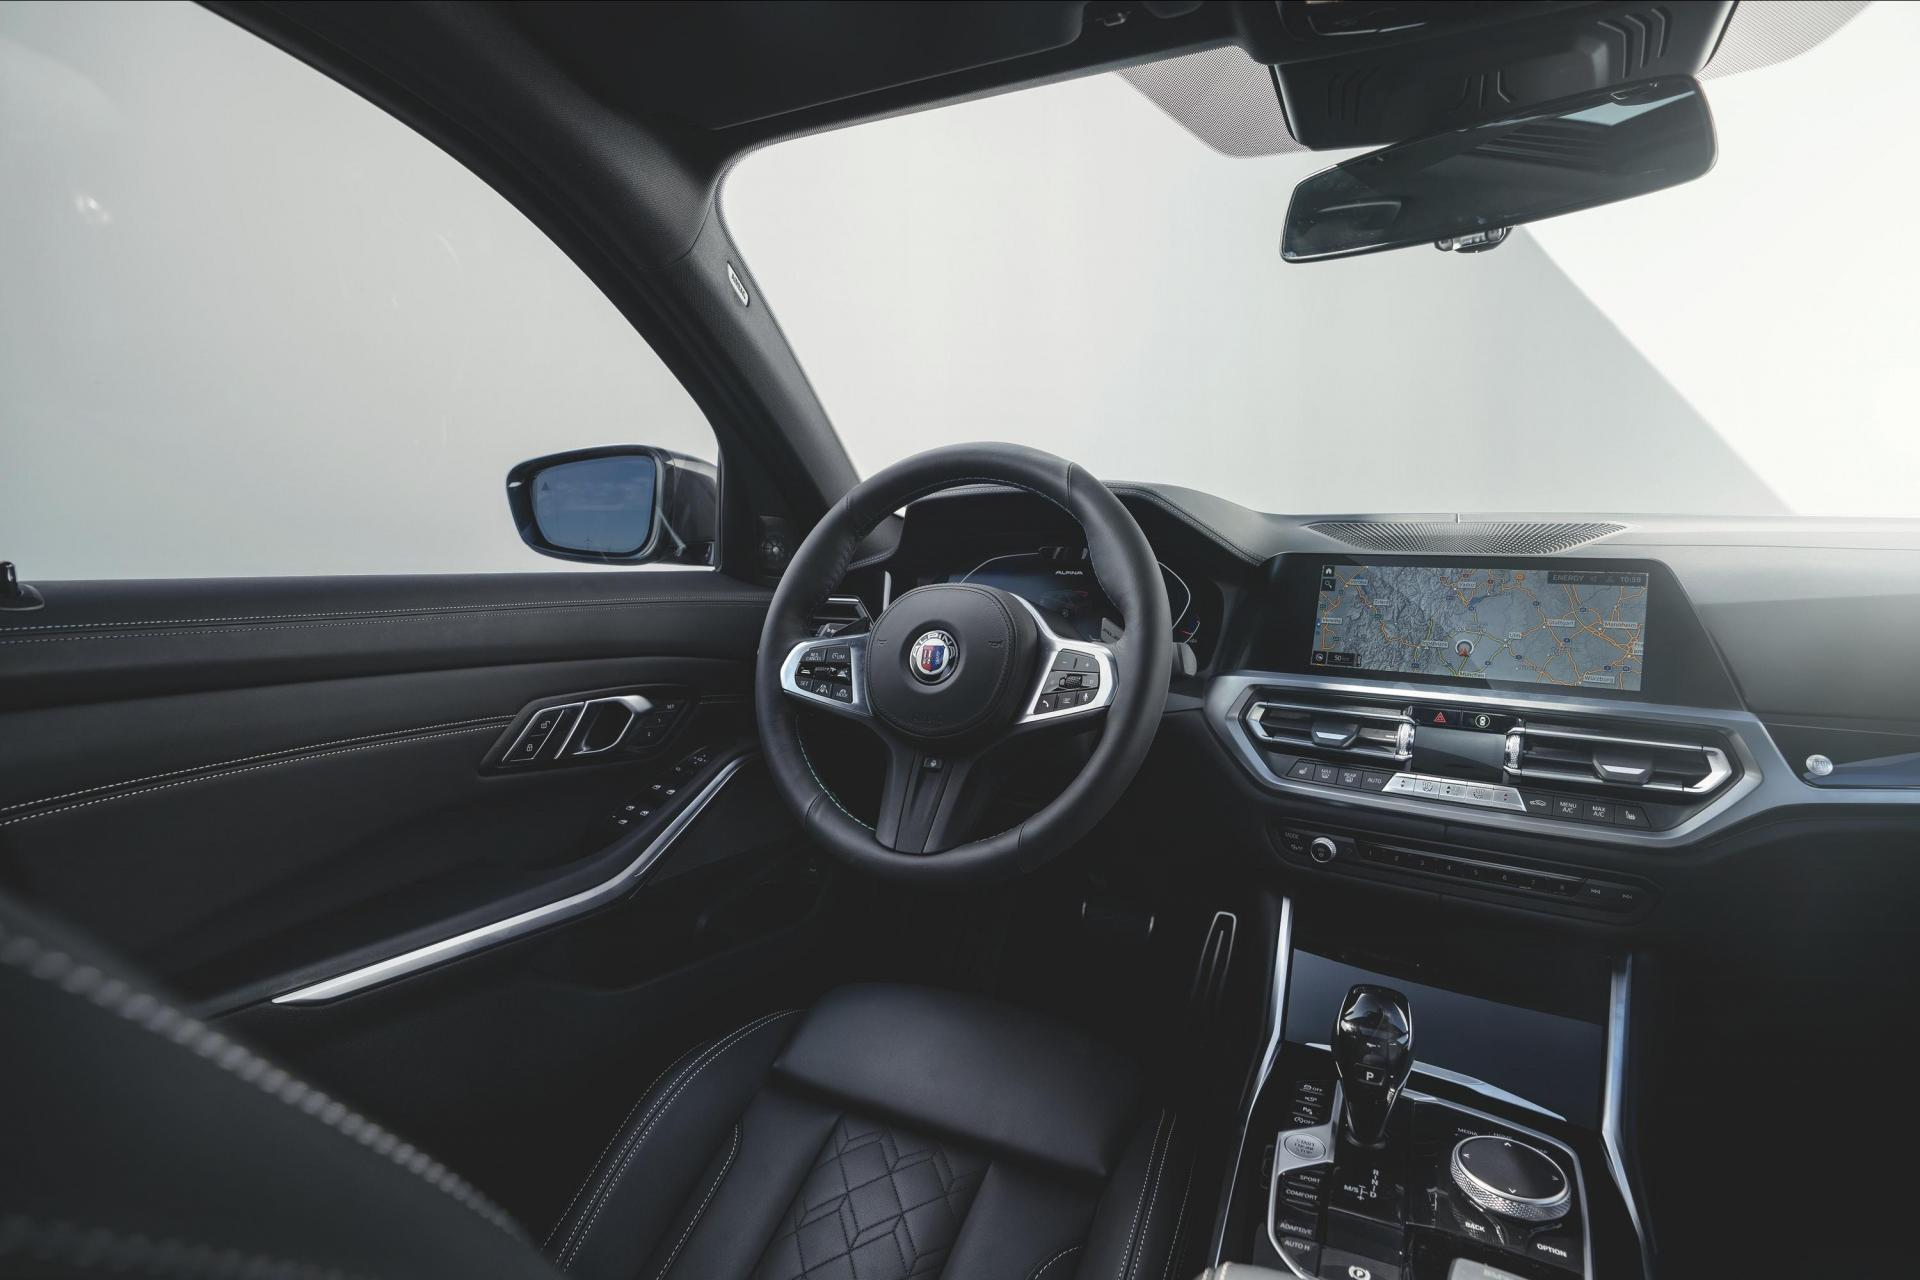 The interior of the D3 boasts hand-stitched leather.